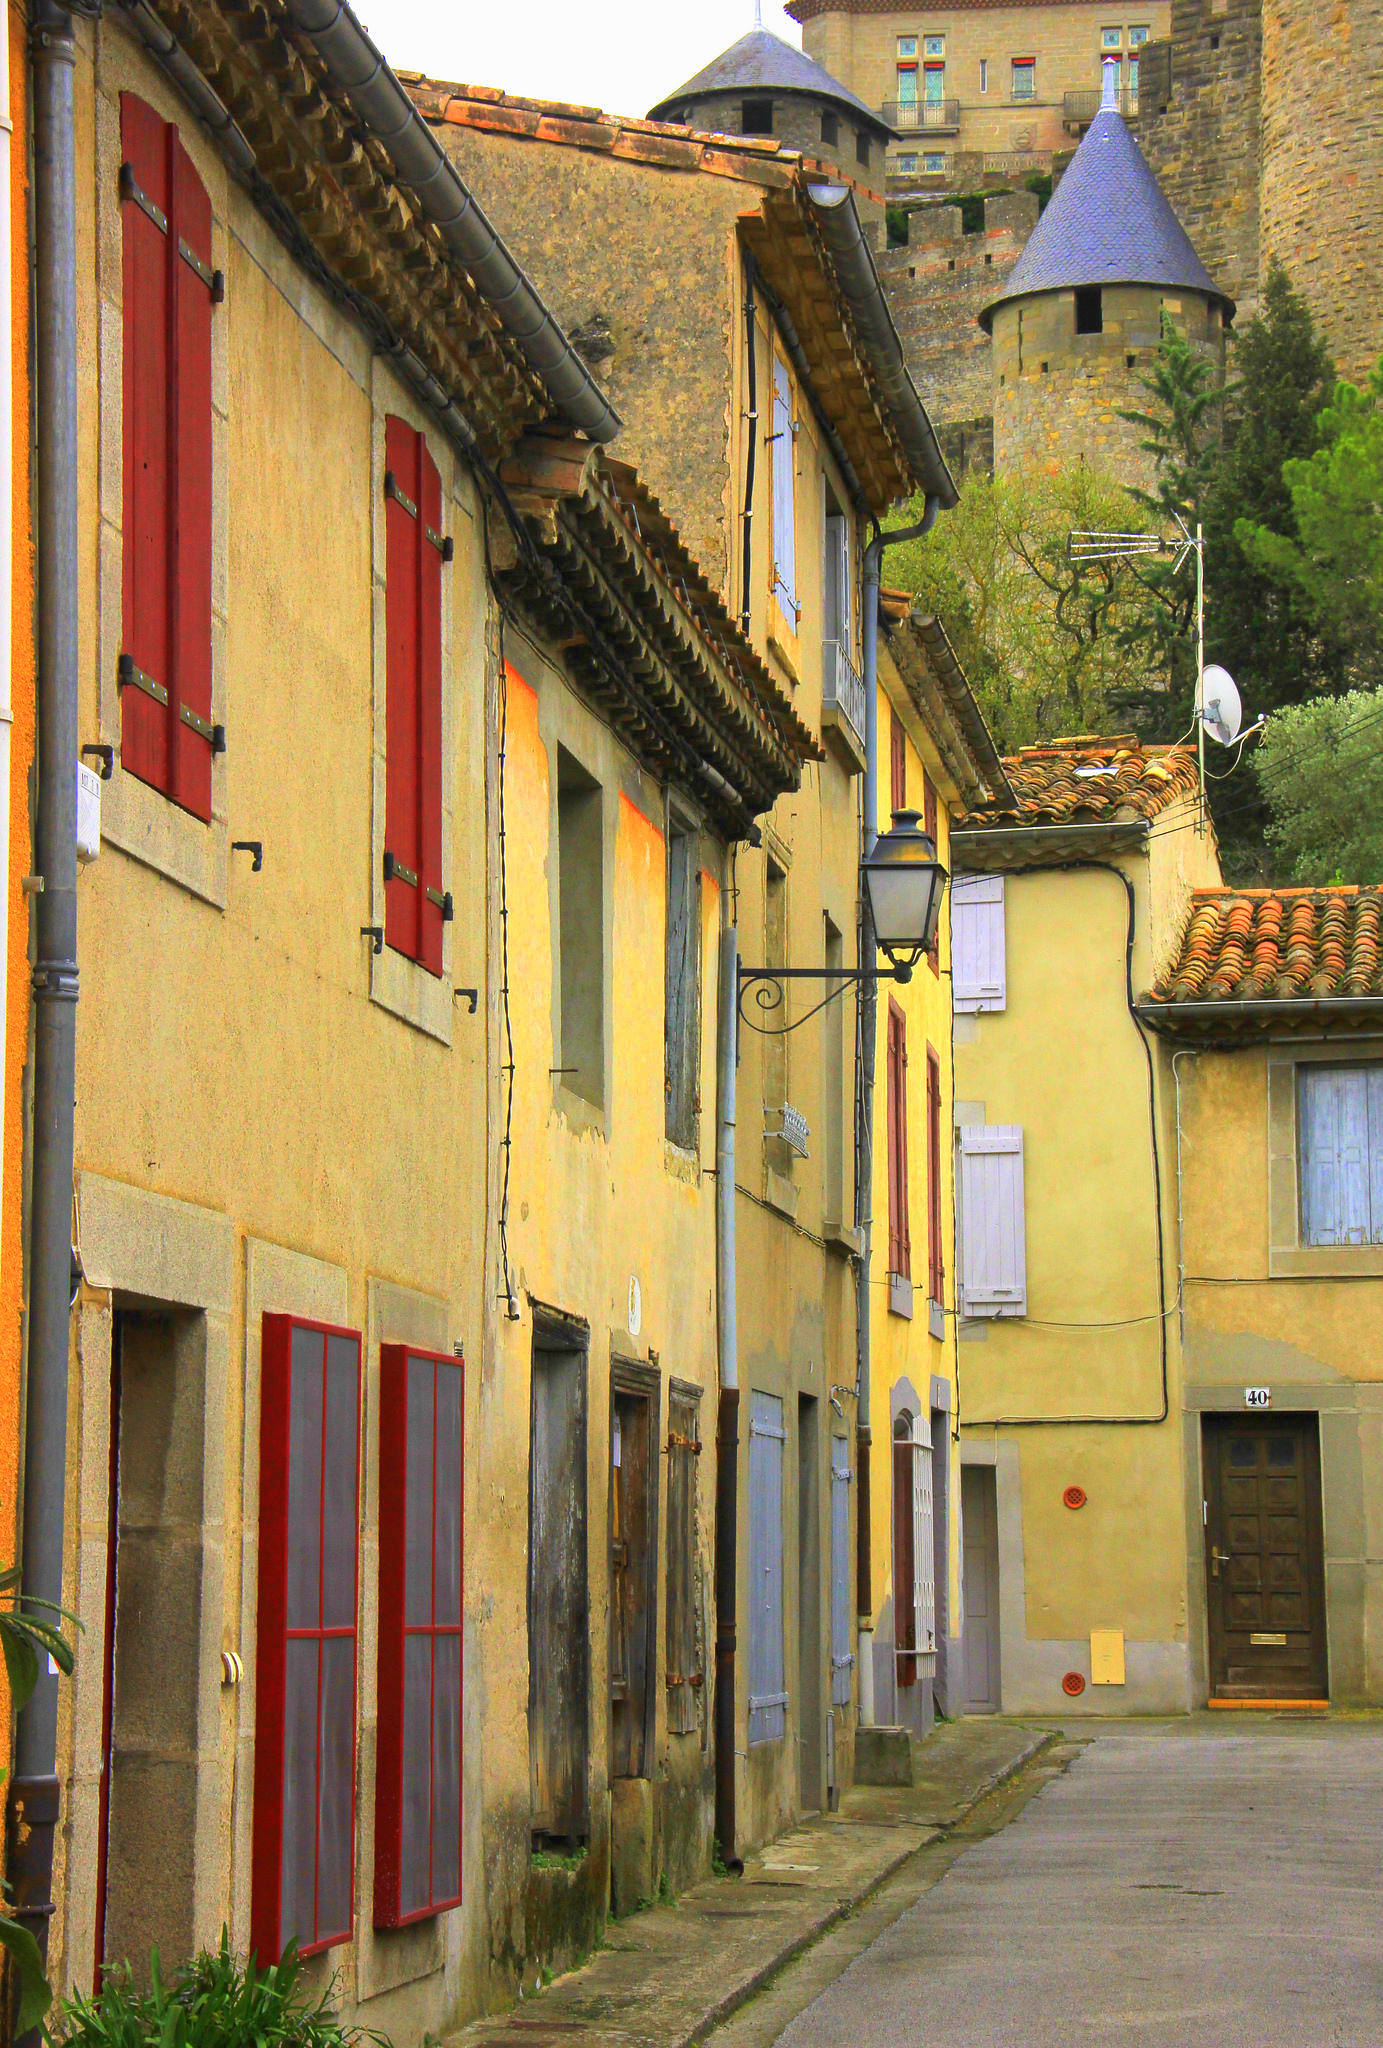 The lively little settlements at the base of Carcassonne Old Town